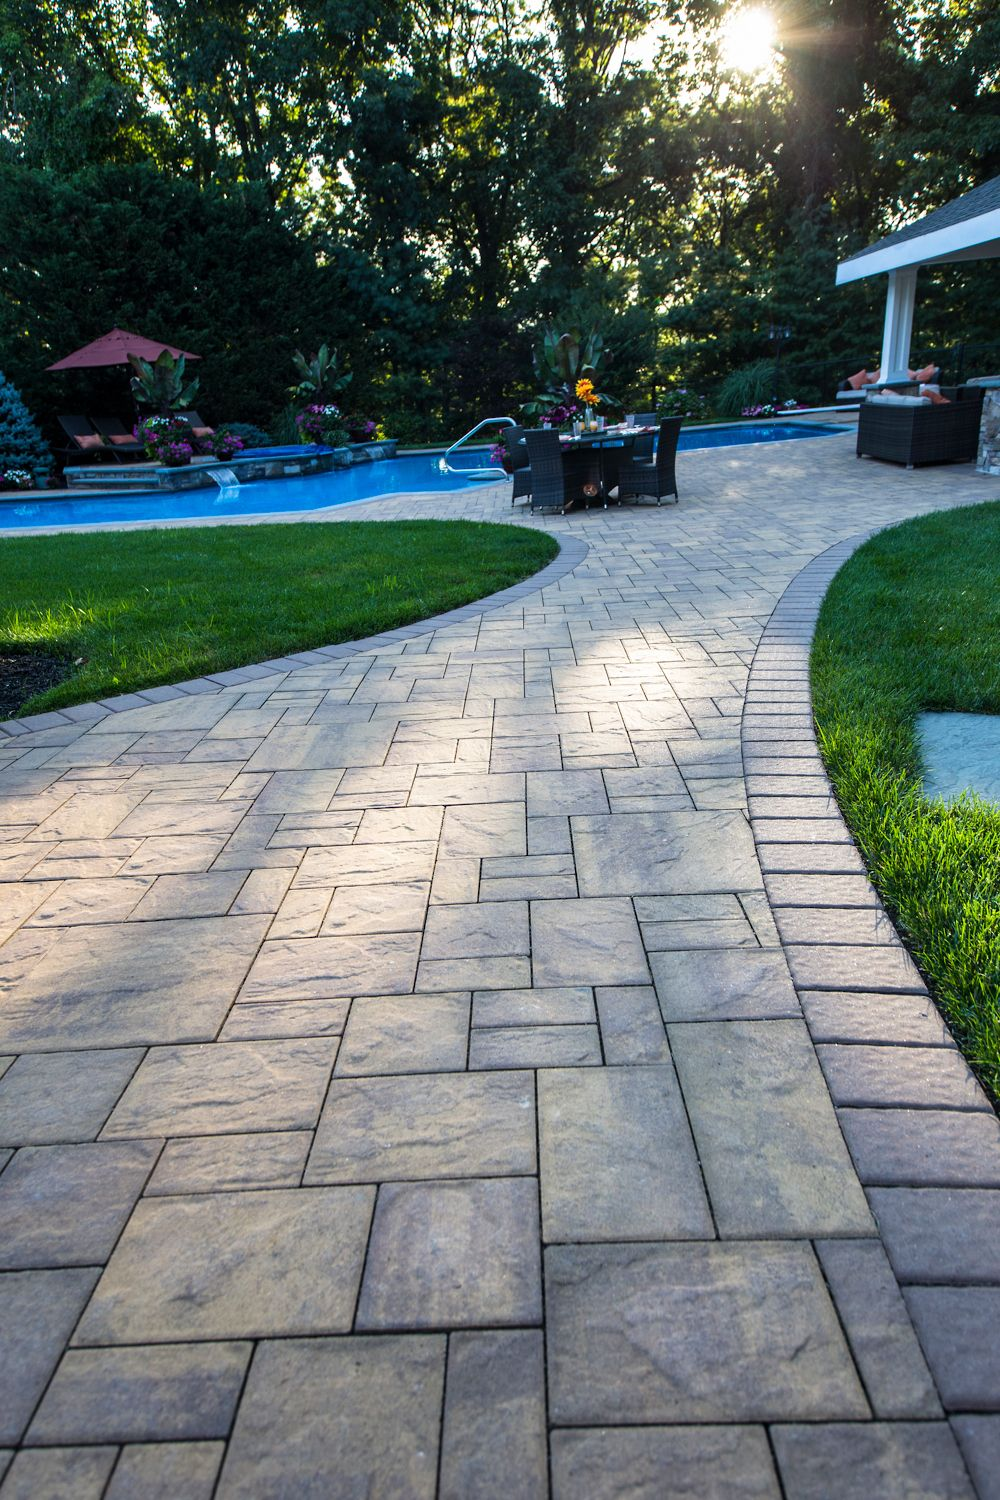 Cambridge pavingstones wall systems color options - Cambridge Pavingstones With Armortec Has Got All The Steps Covered To Get You The Perfect Patio